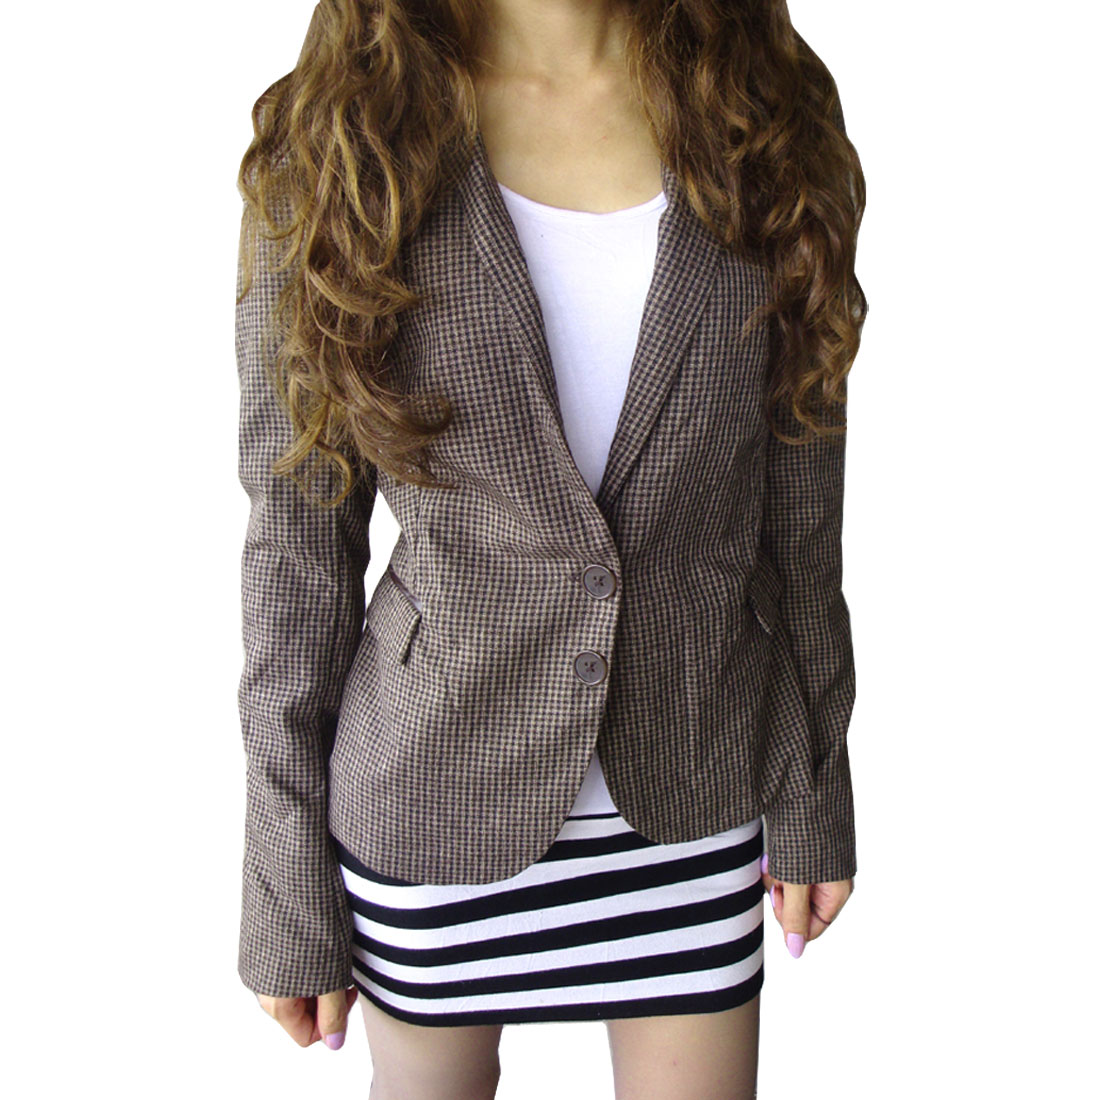 Charming Faux Leather Elbow Mini Grids Print Blazer Brown XS for Women